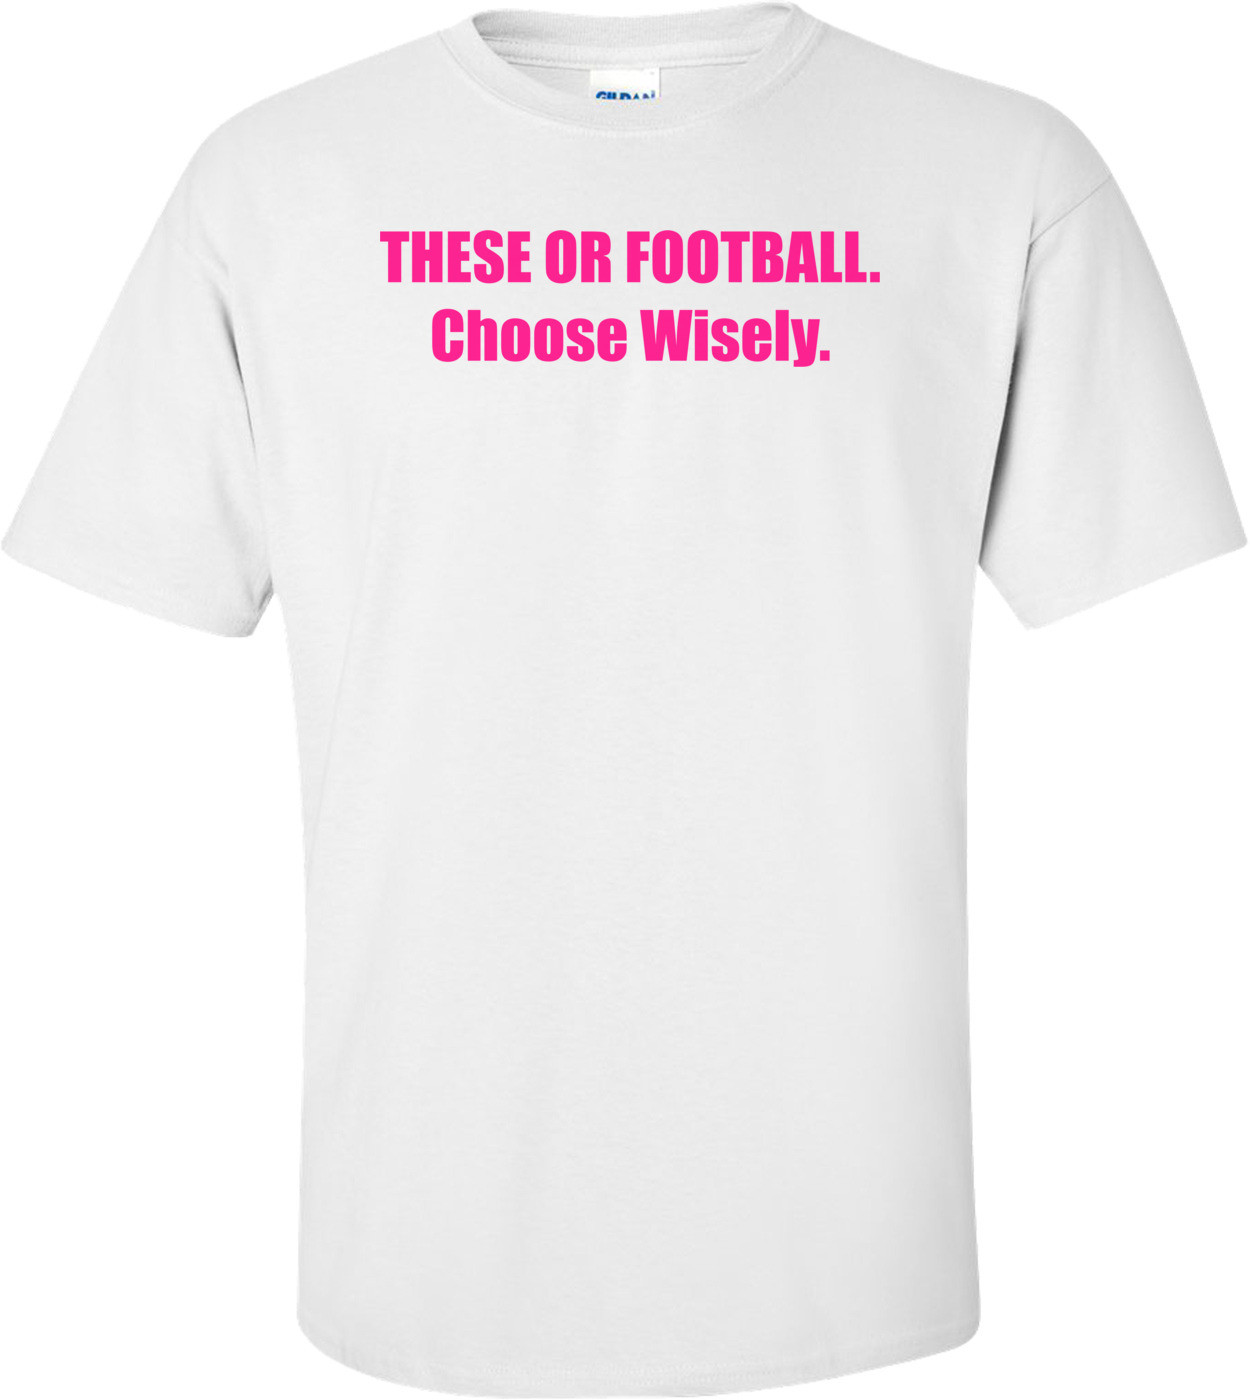 These Or Football. Choose Wisely Shirt